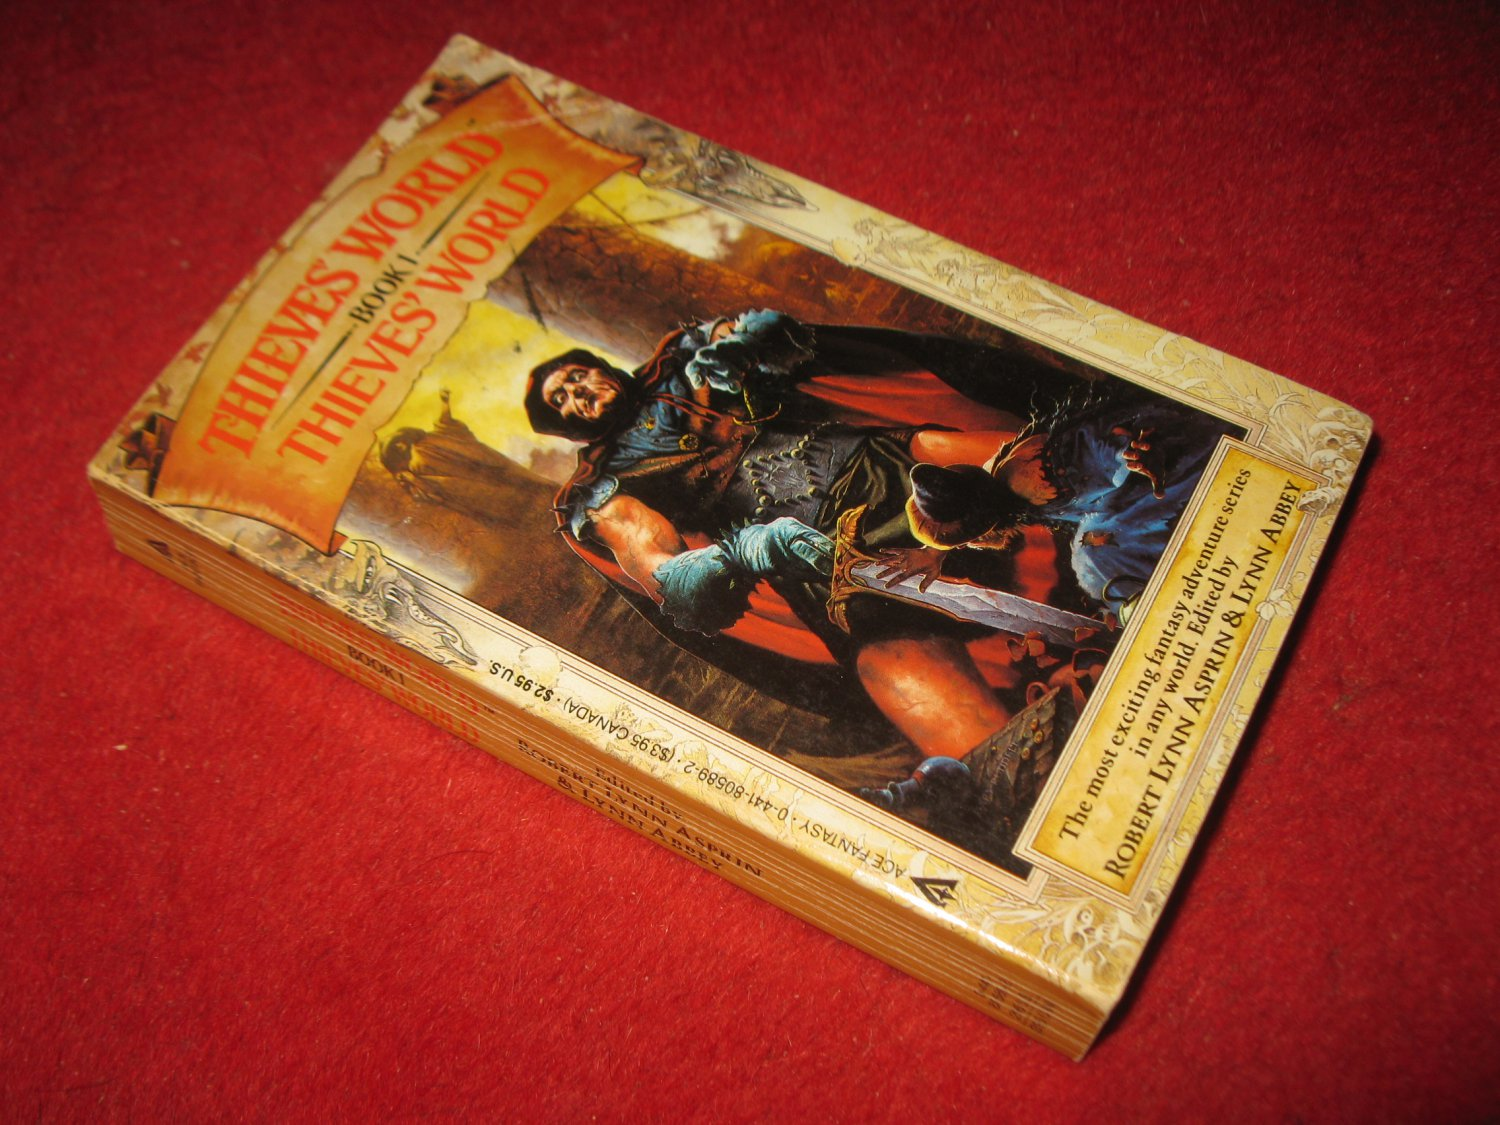 1986 Thieves World #1: Thieves' World - Ace books - paperback